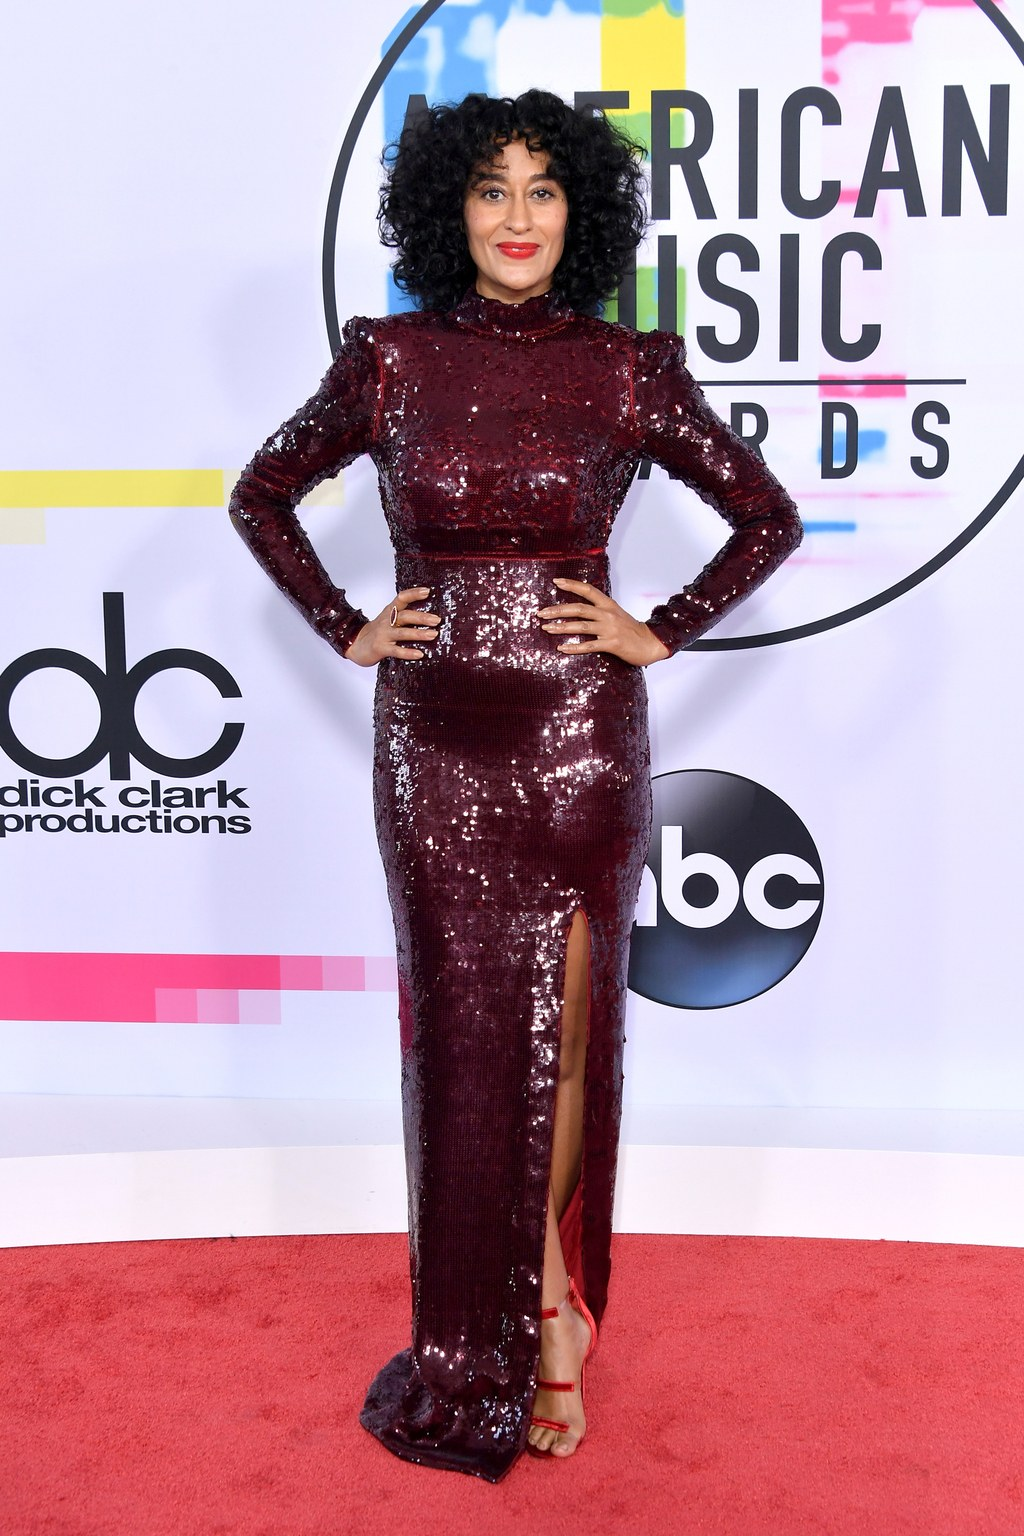 9 Outfit Tracee Ellis Ross Wore While Hosting The AMA's